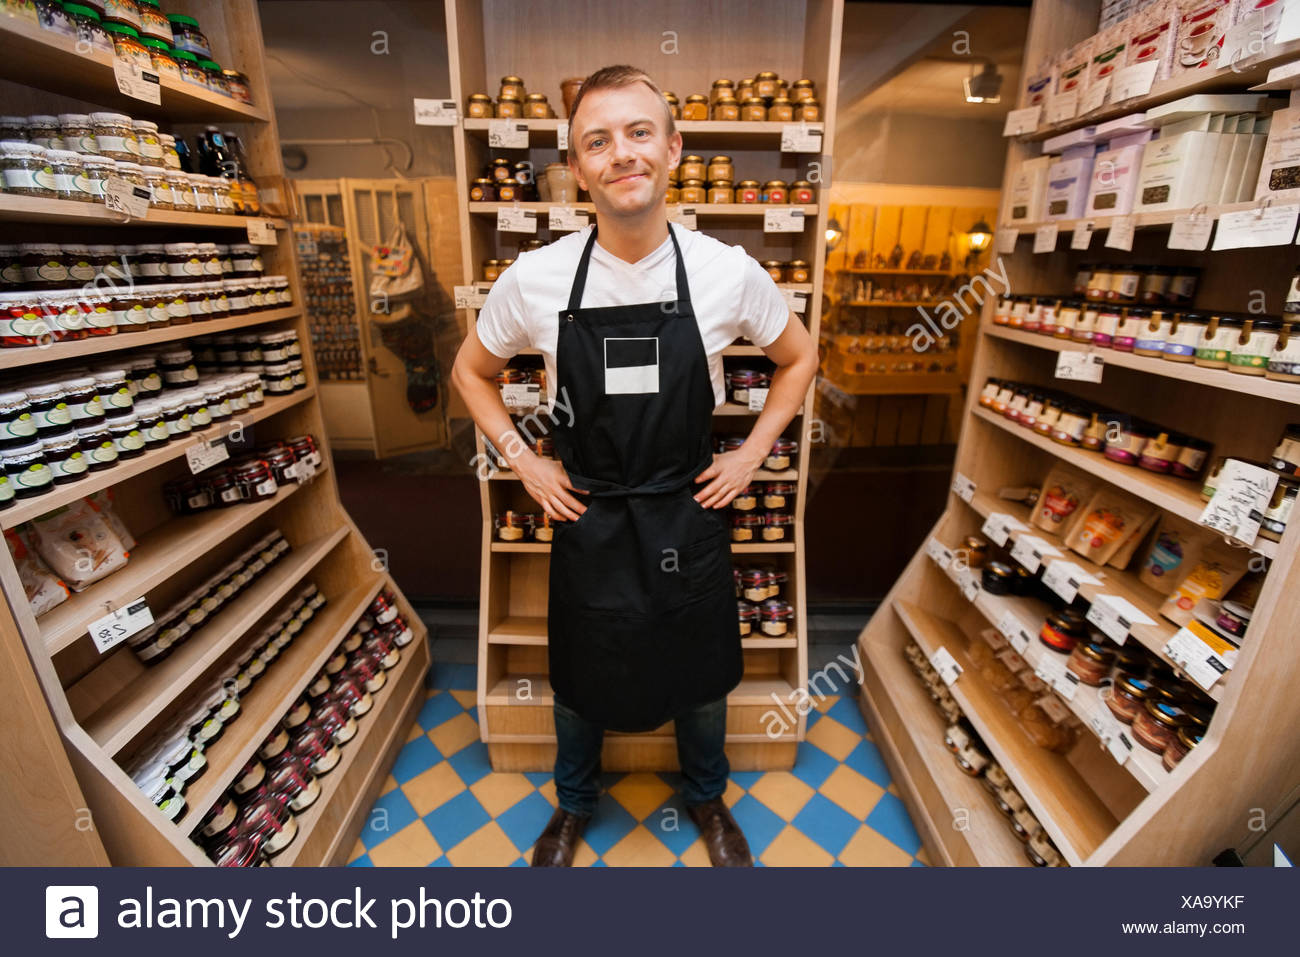 Full length portrait of mid adult salesman standing hands on hips in grocery store - Stock Image